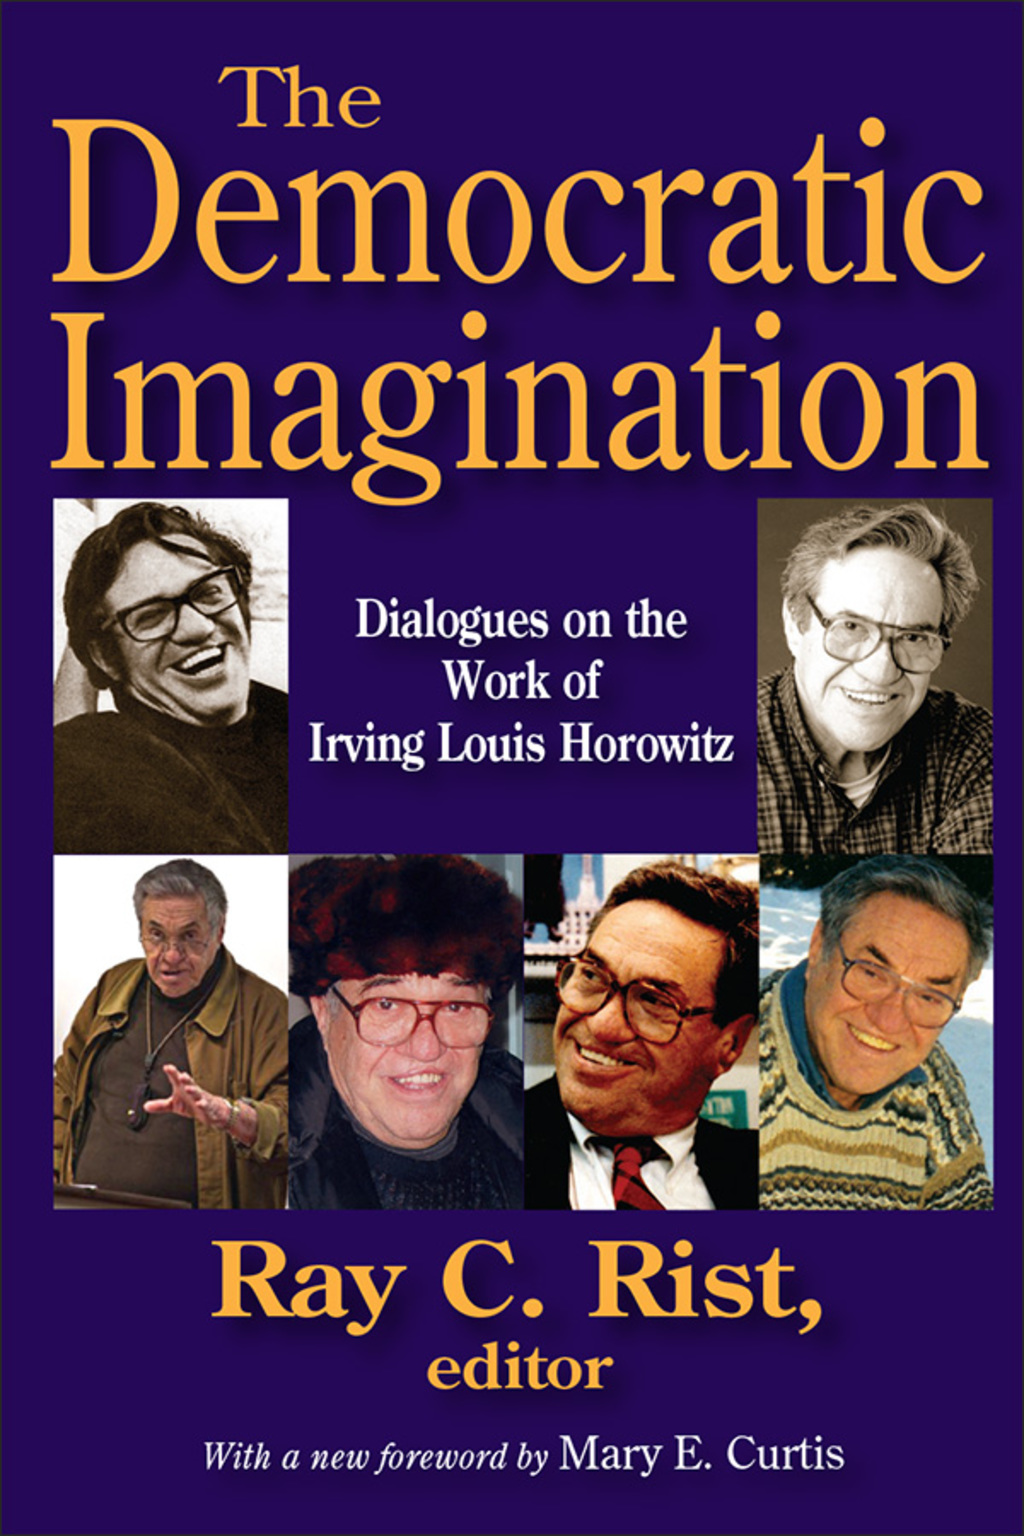 By Louis Filler PRINTISBN: 9781412856072 E-TEXT ISBN: 9781351483902 Edition: 1